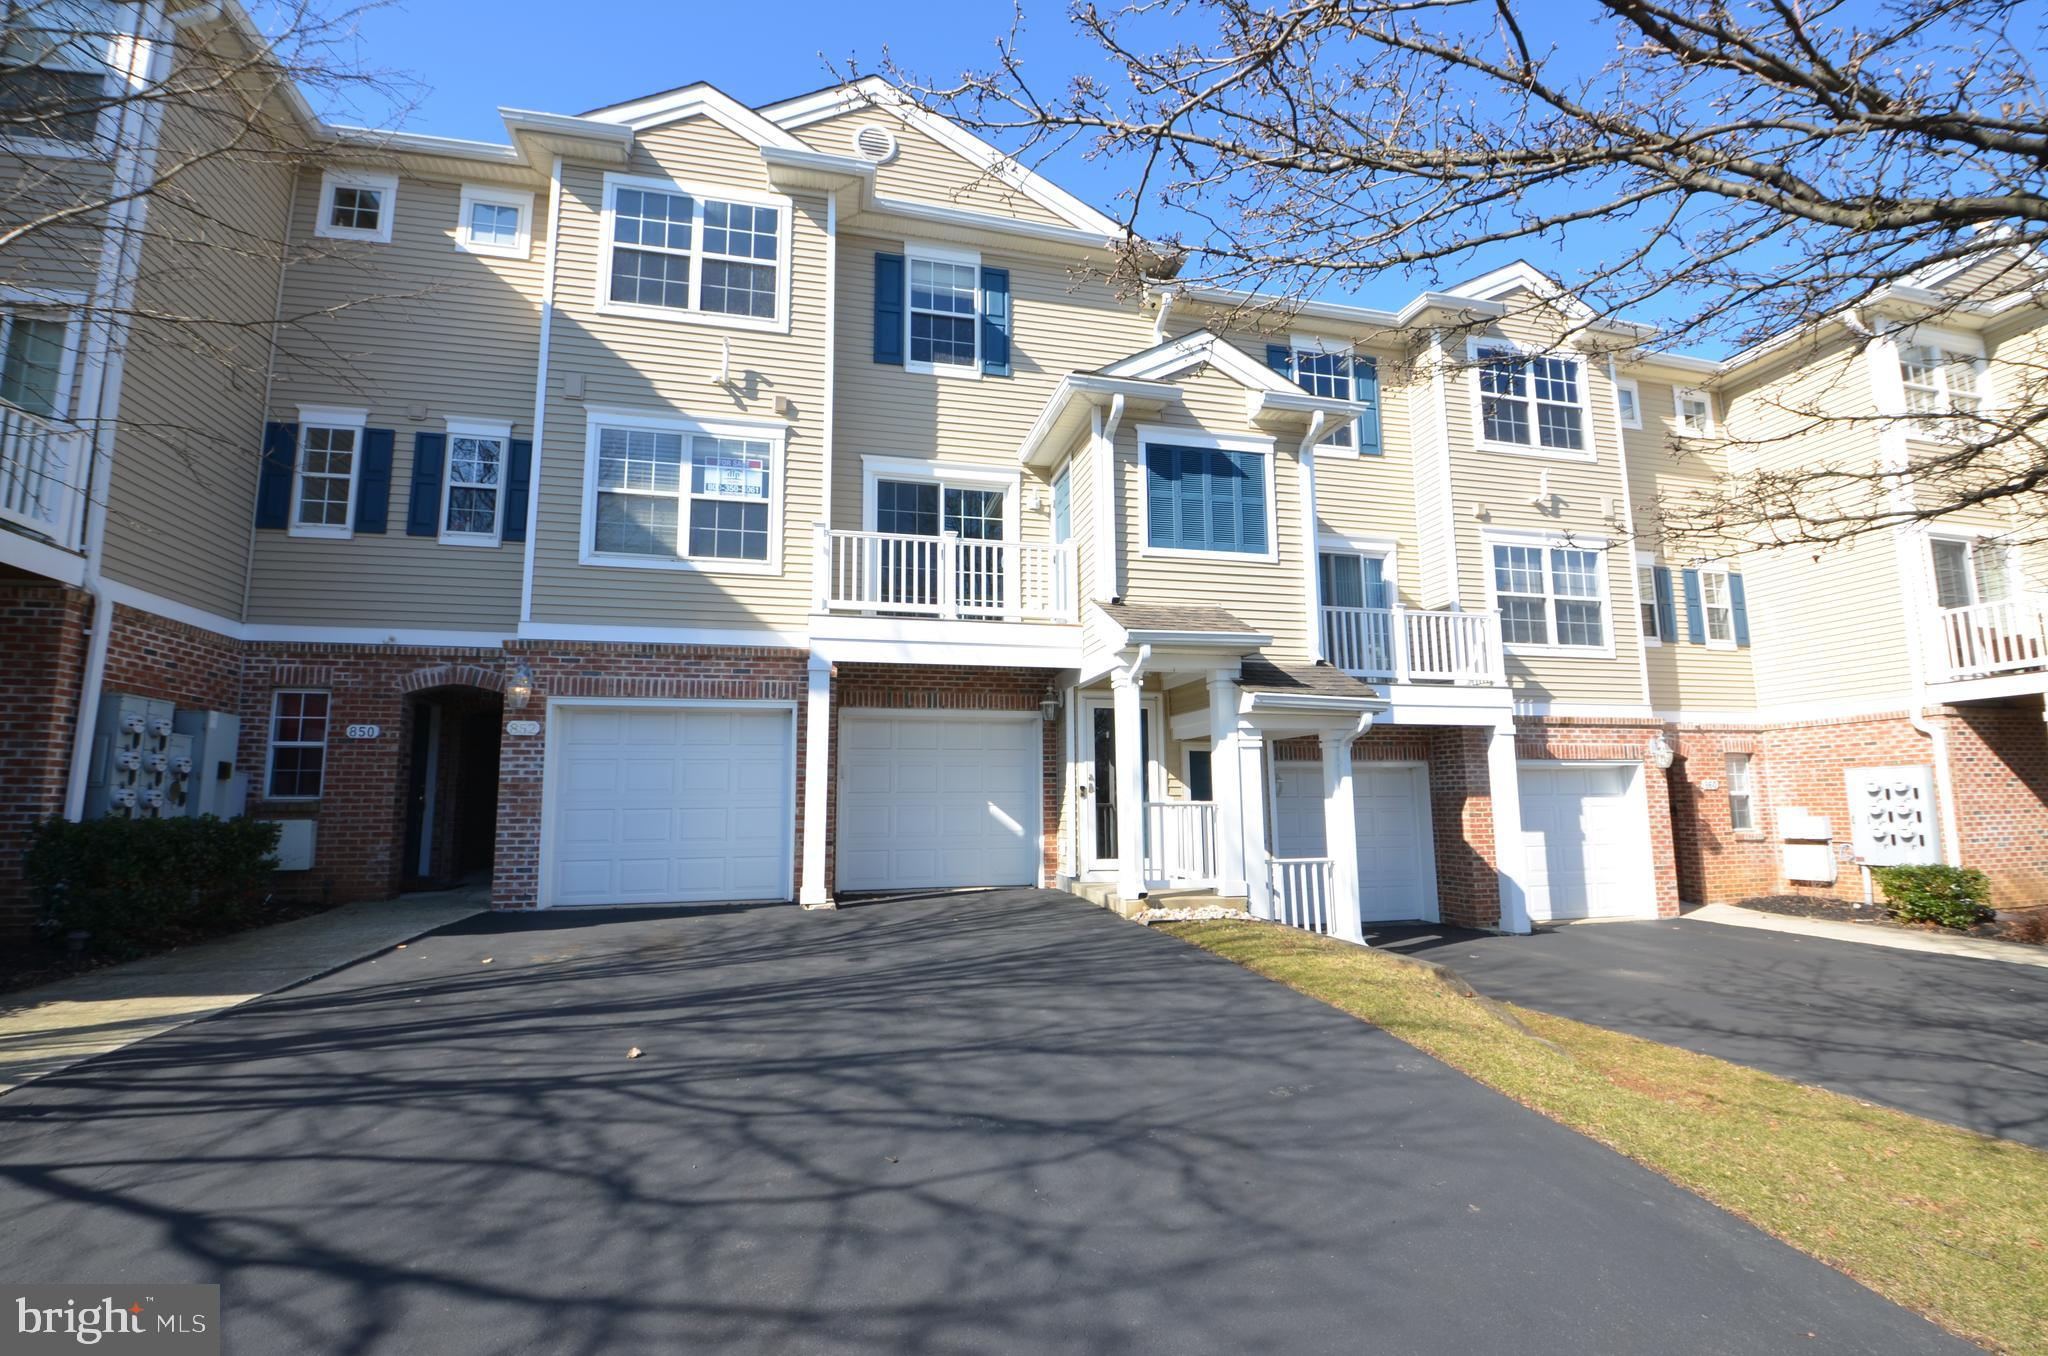 854 NITTANY COURT C554, ALLENTOWN, PA 18104